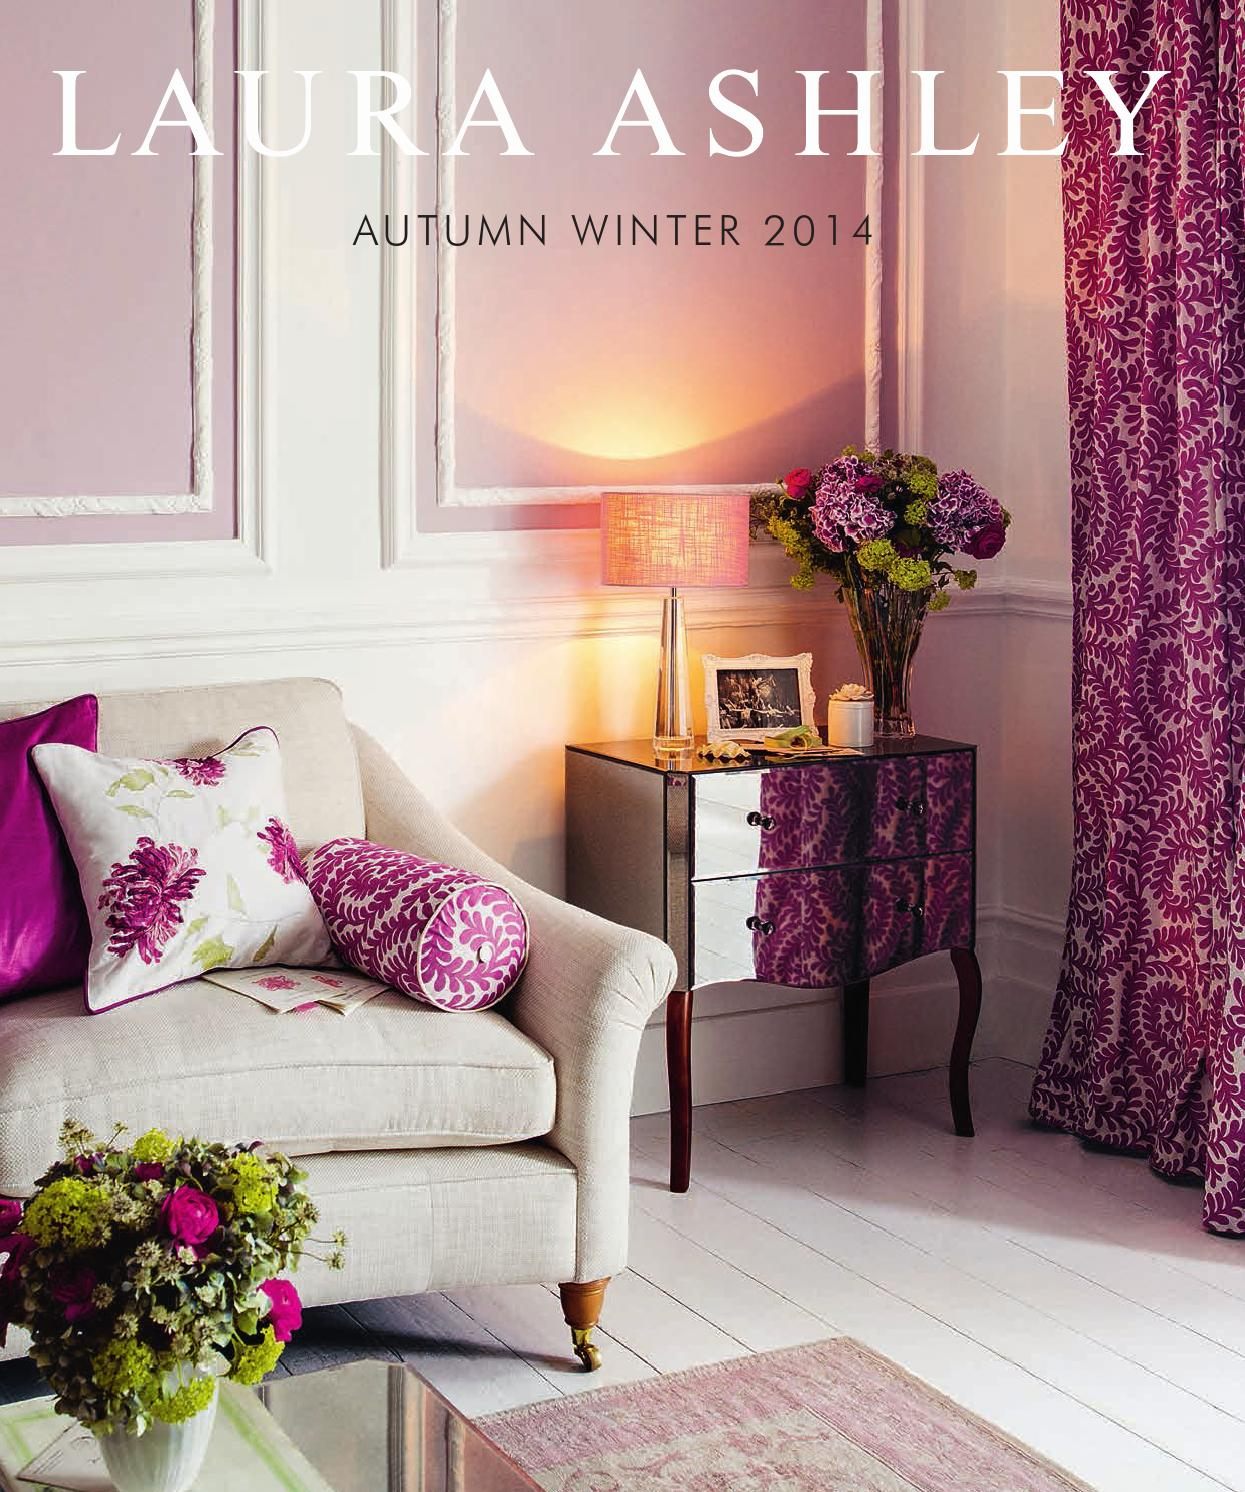 Laura ashley katalog autum winter 2014 by laura ashley - Catalogo laura ashley ...